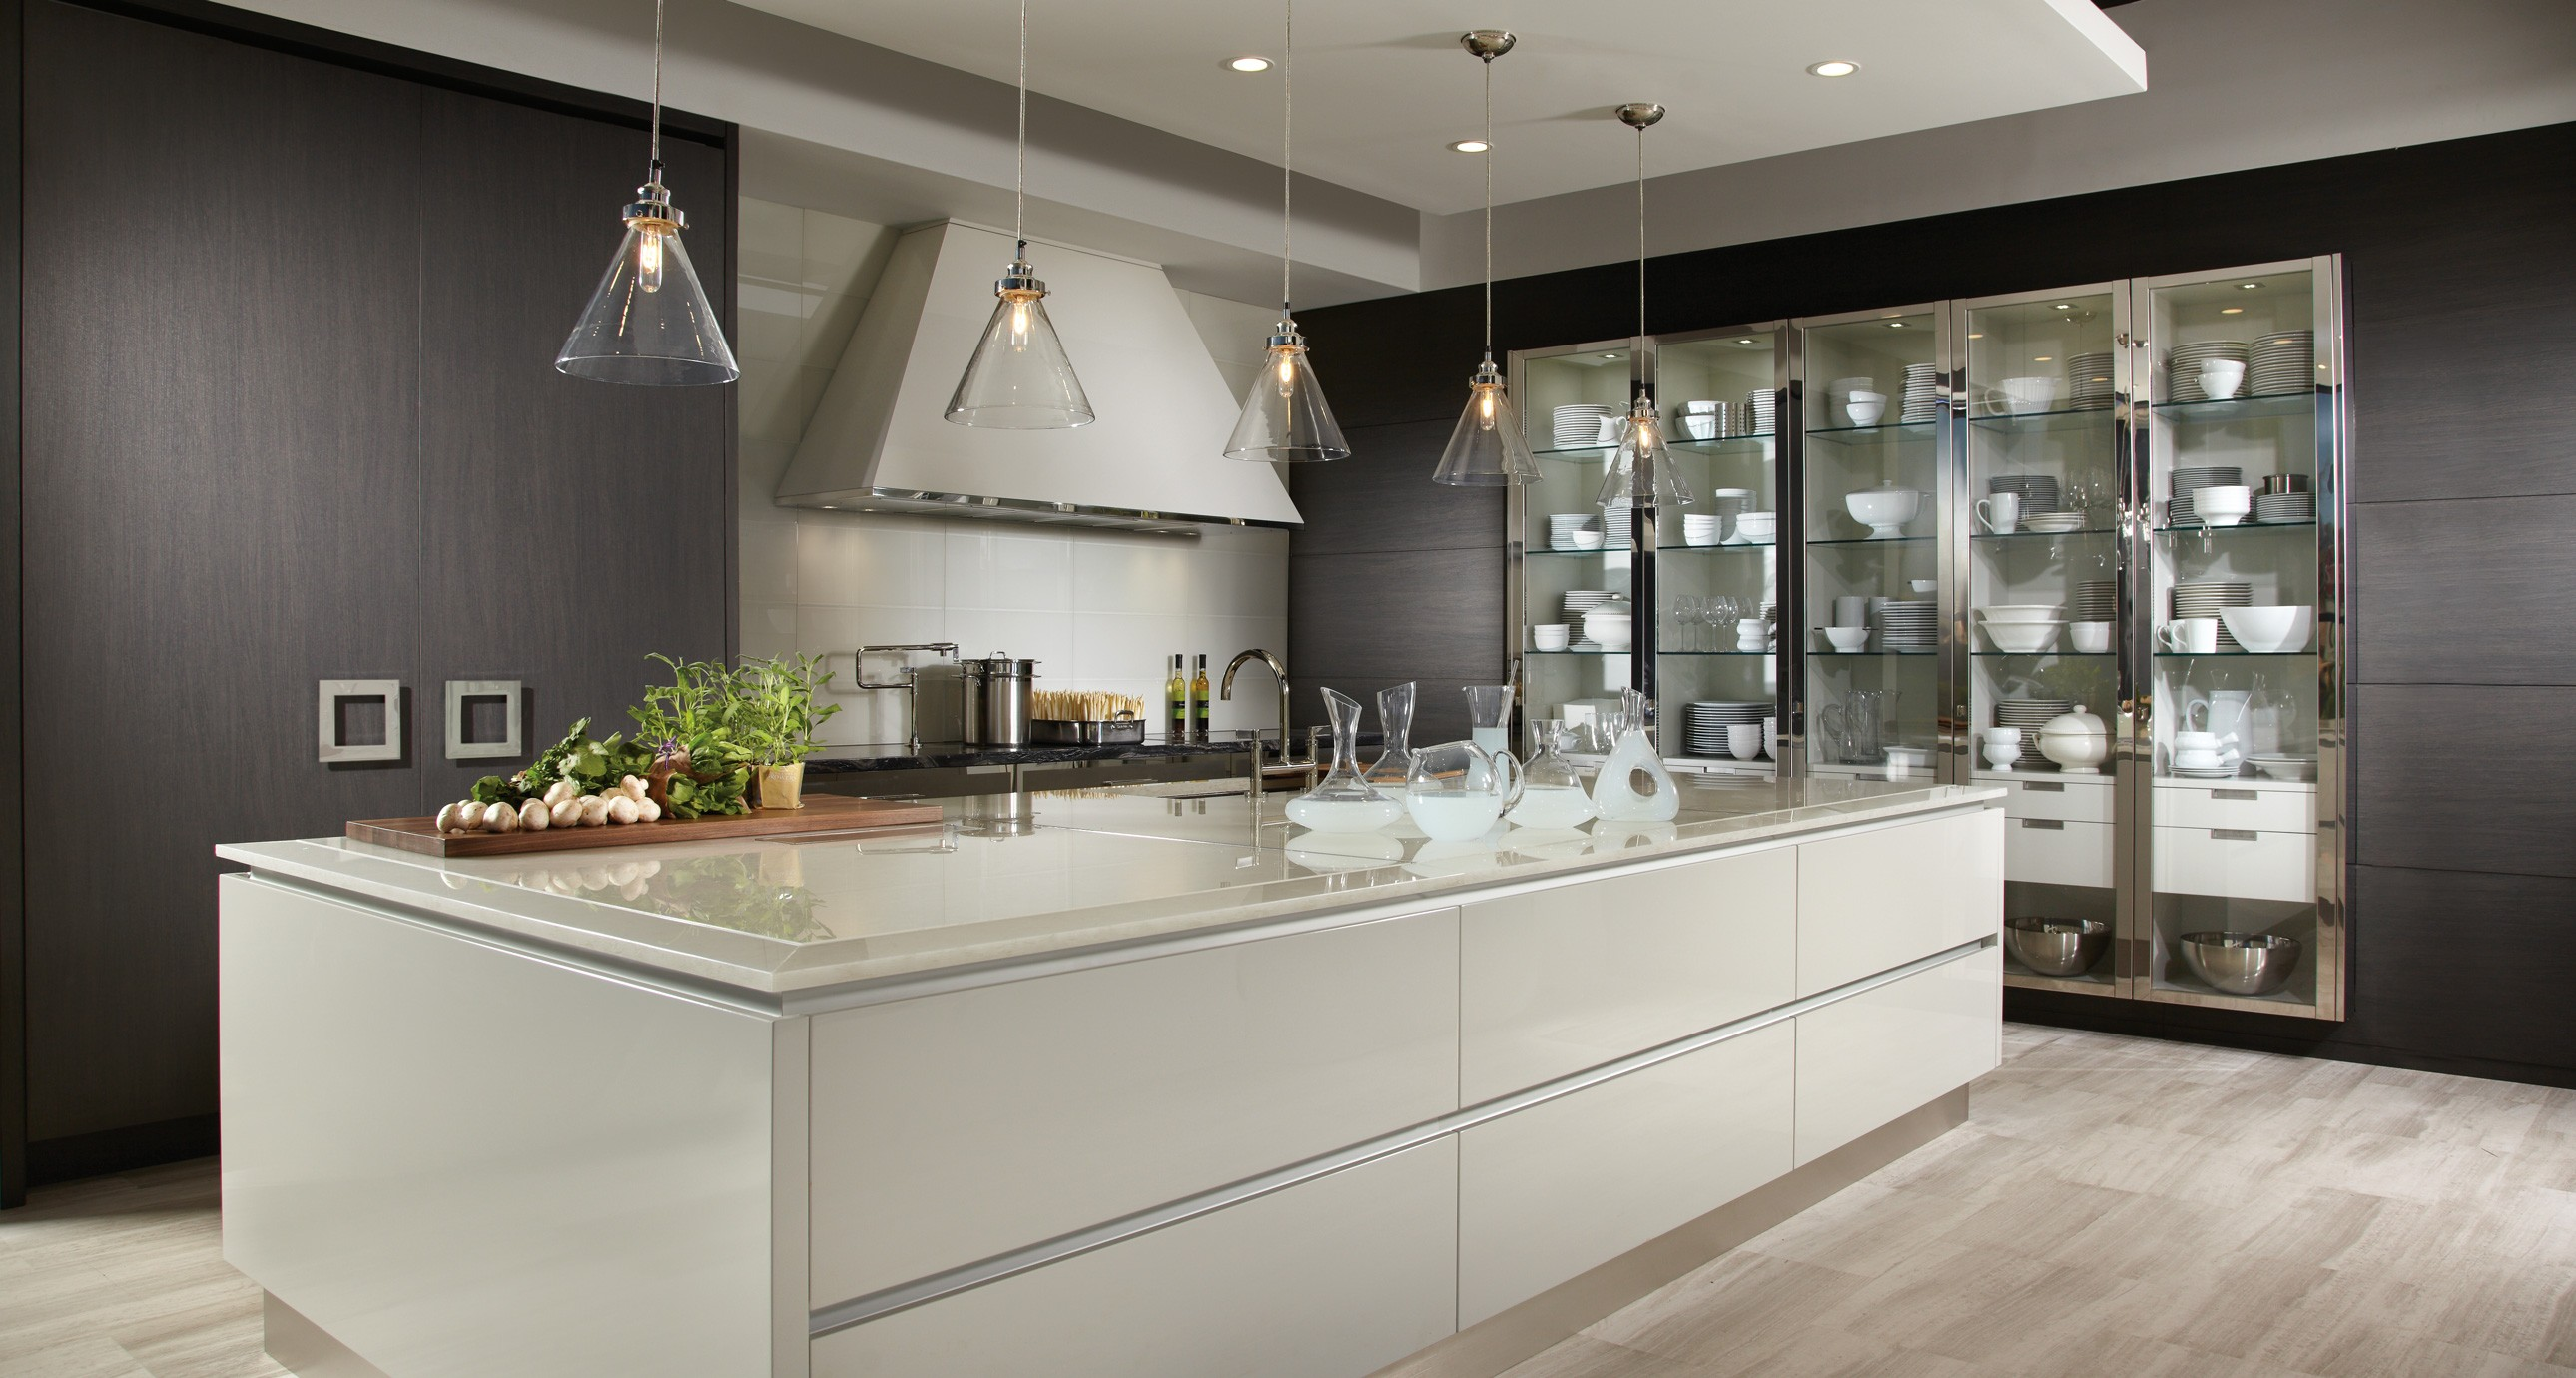 MODERN REFLECTIONS  Downsview Kitchens and Fine Custom Cabinetry  Manufacturers of Custom